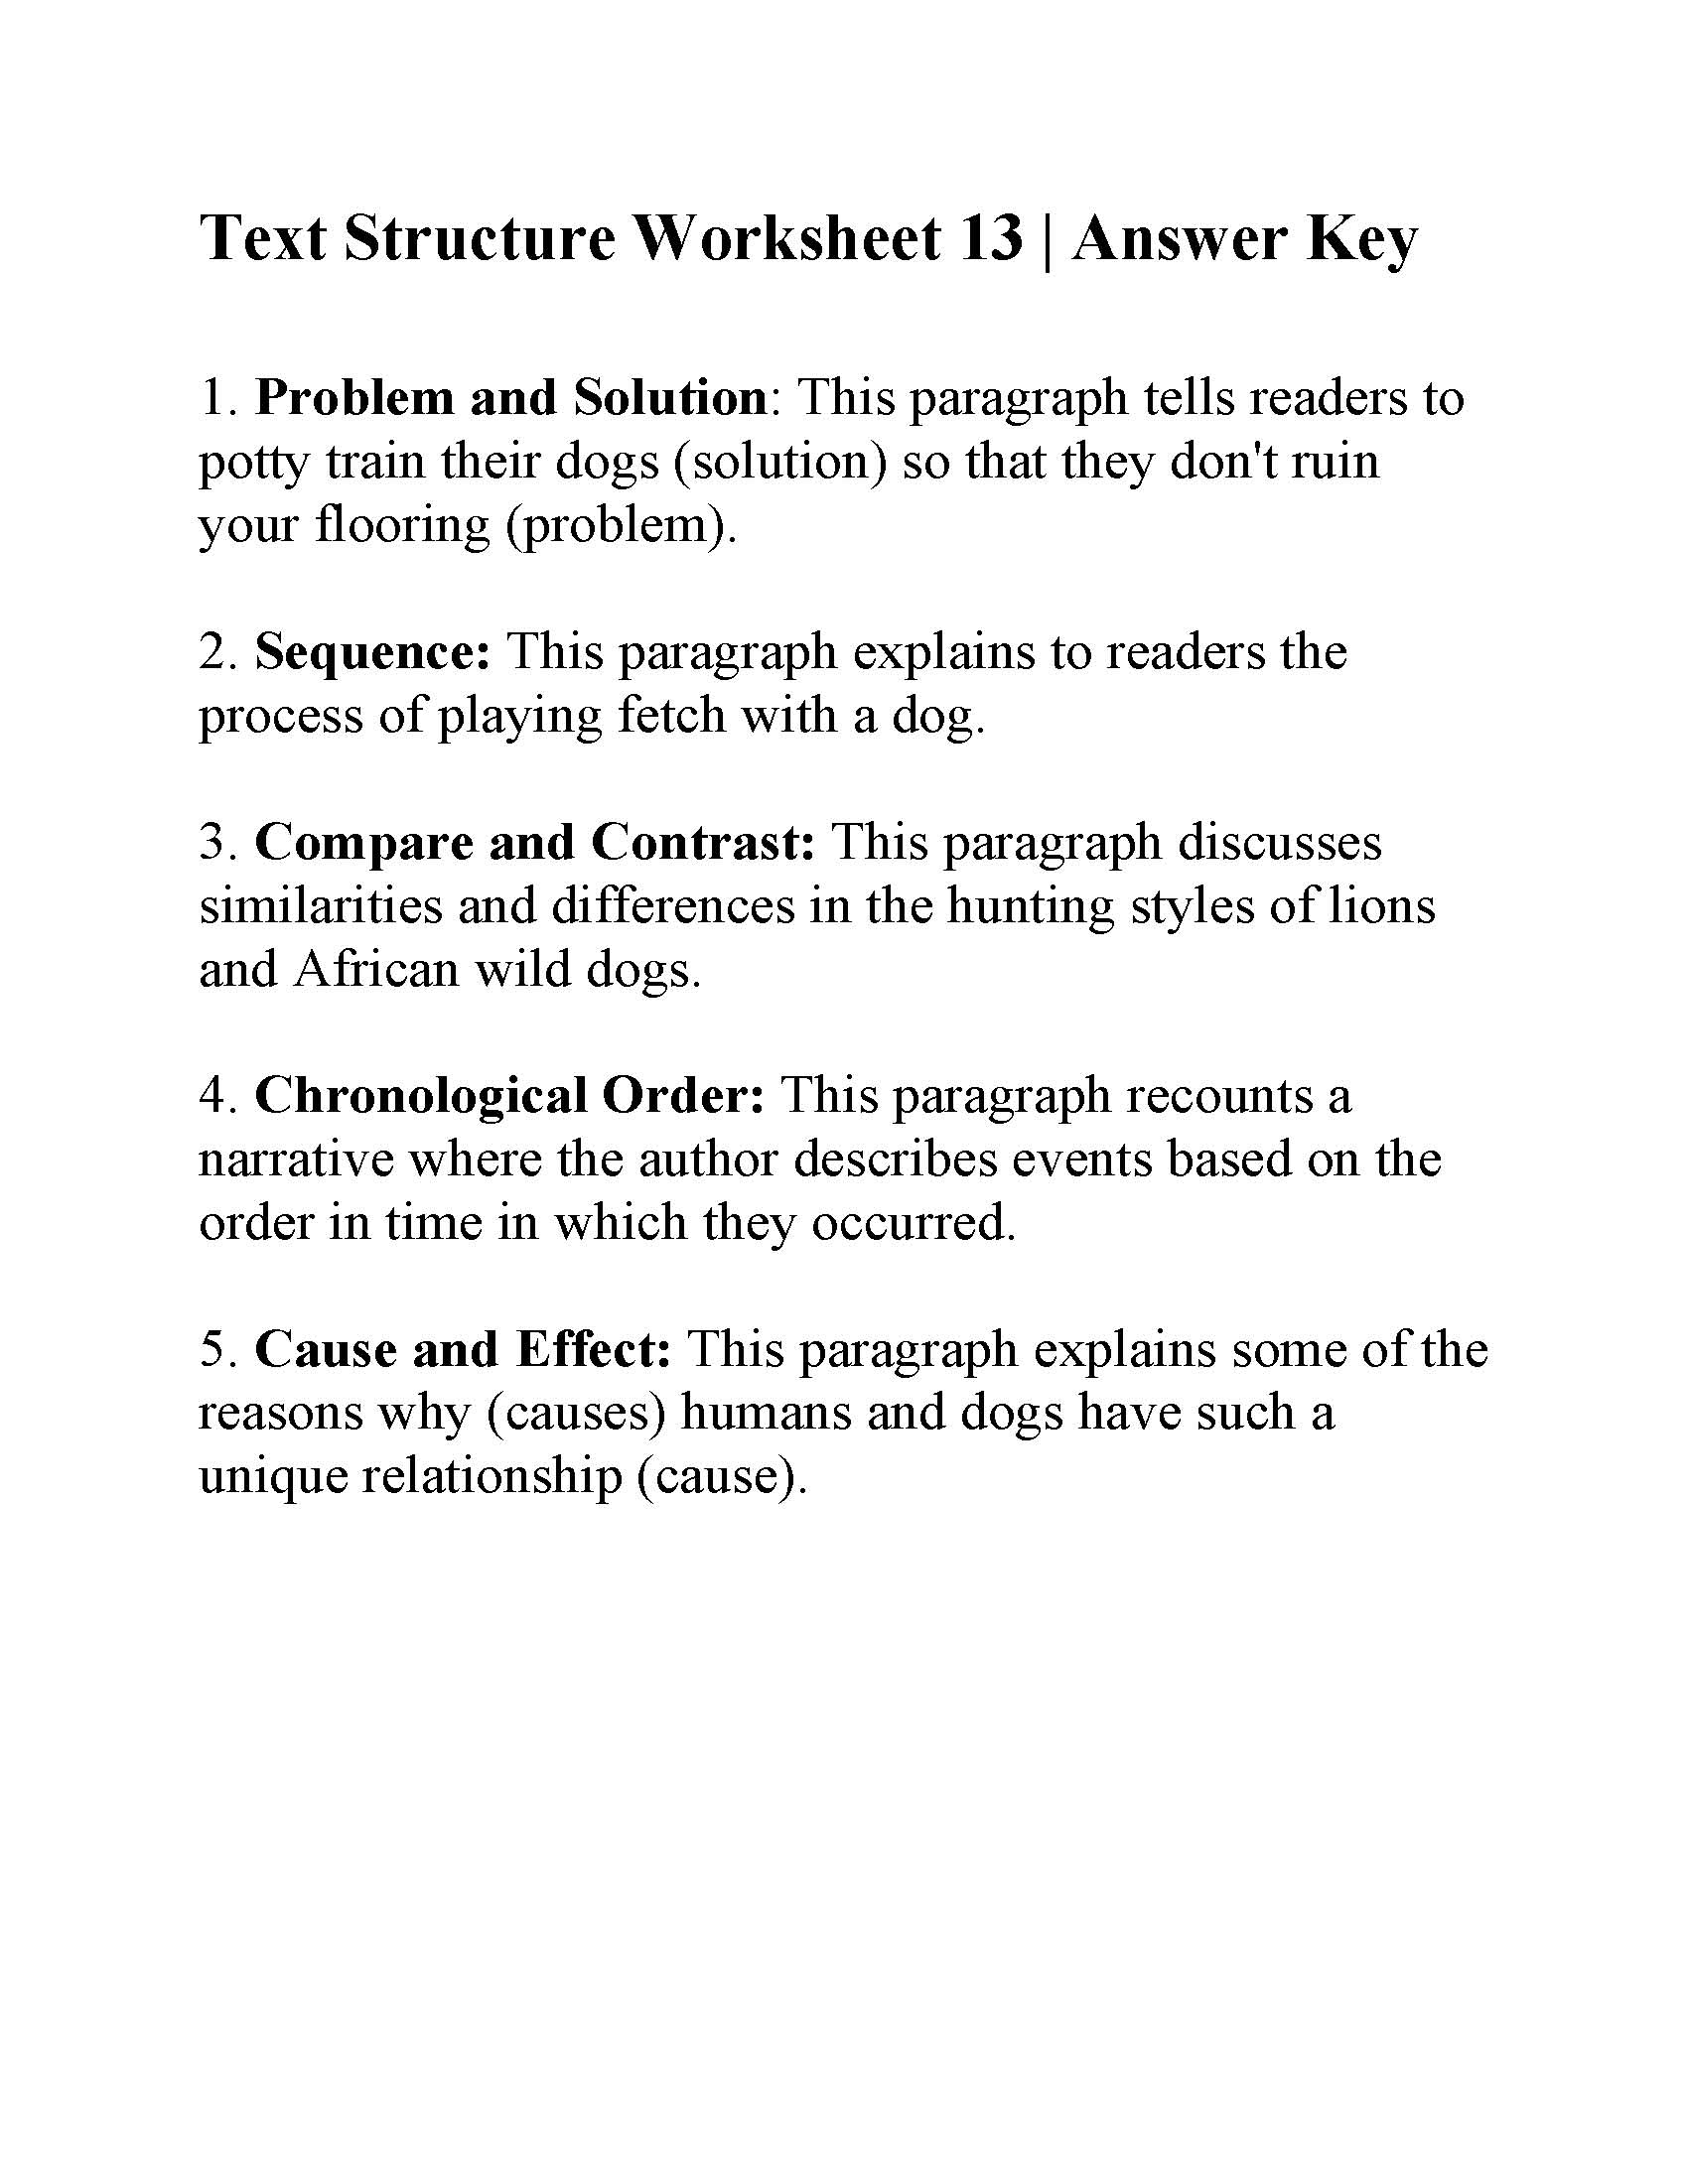 Text Structure Worksheet 13 | Answers